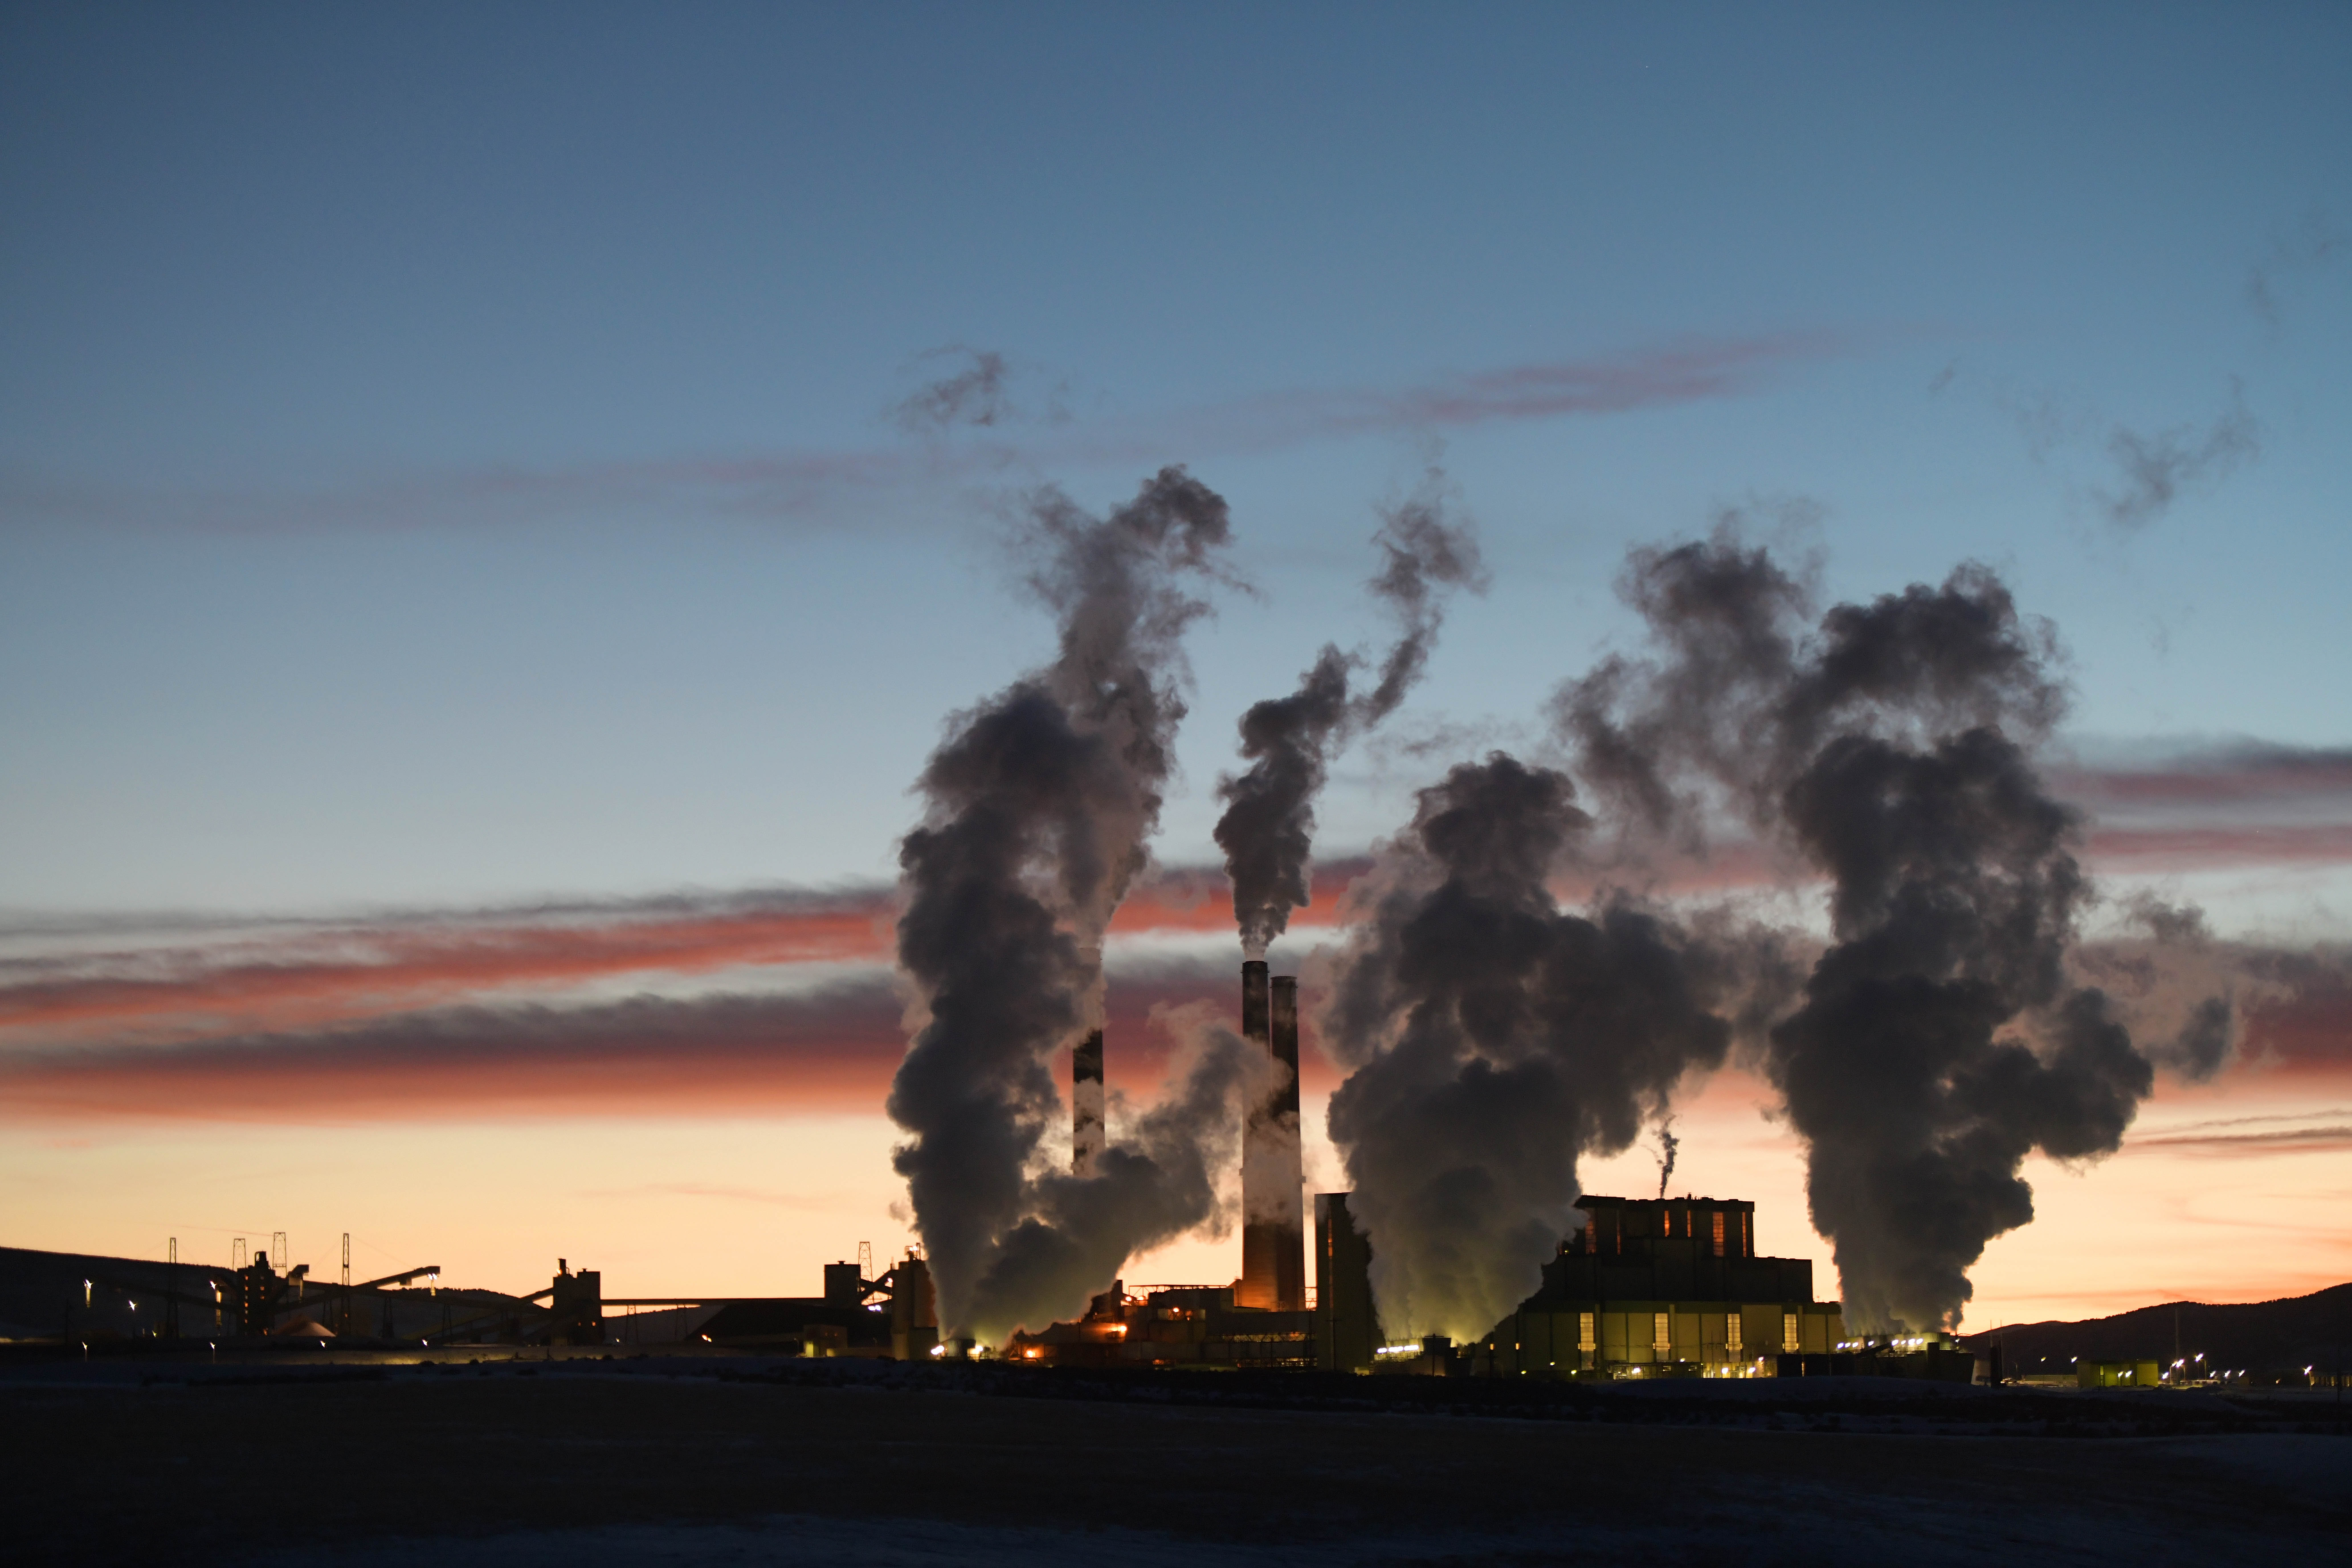 Plums of smoke rise from from the Craig Station coal-burning power plant, against a setting sun.